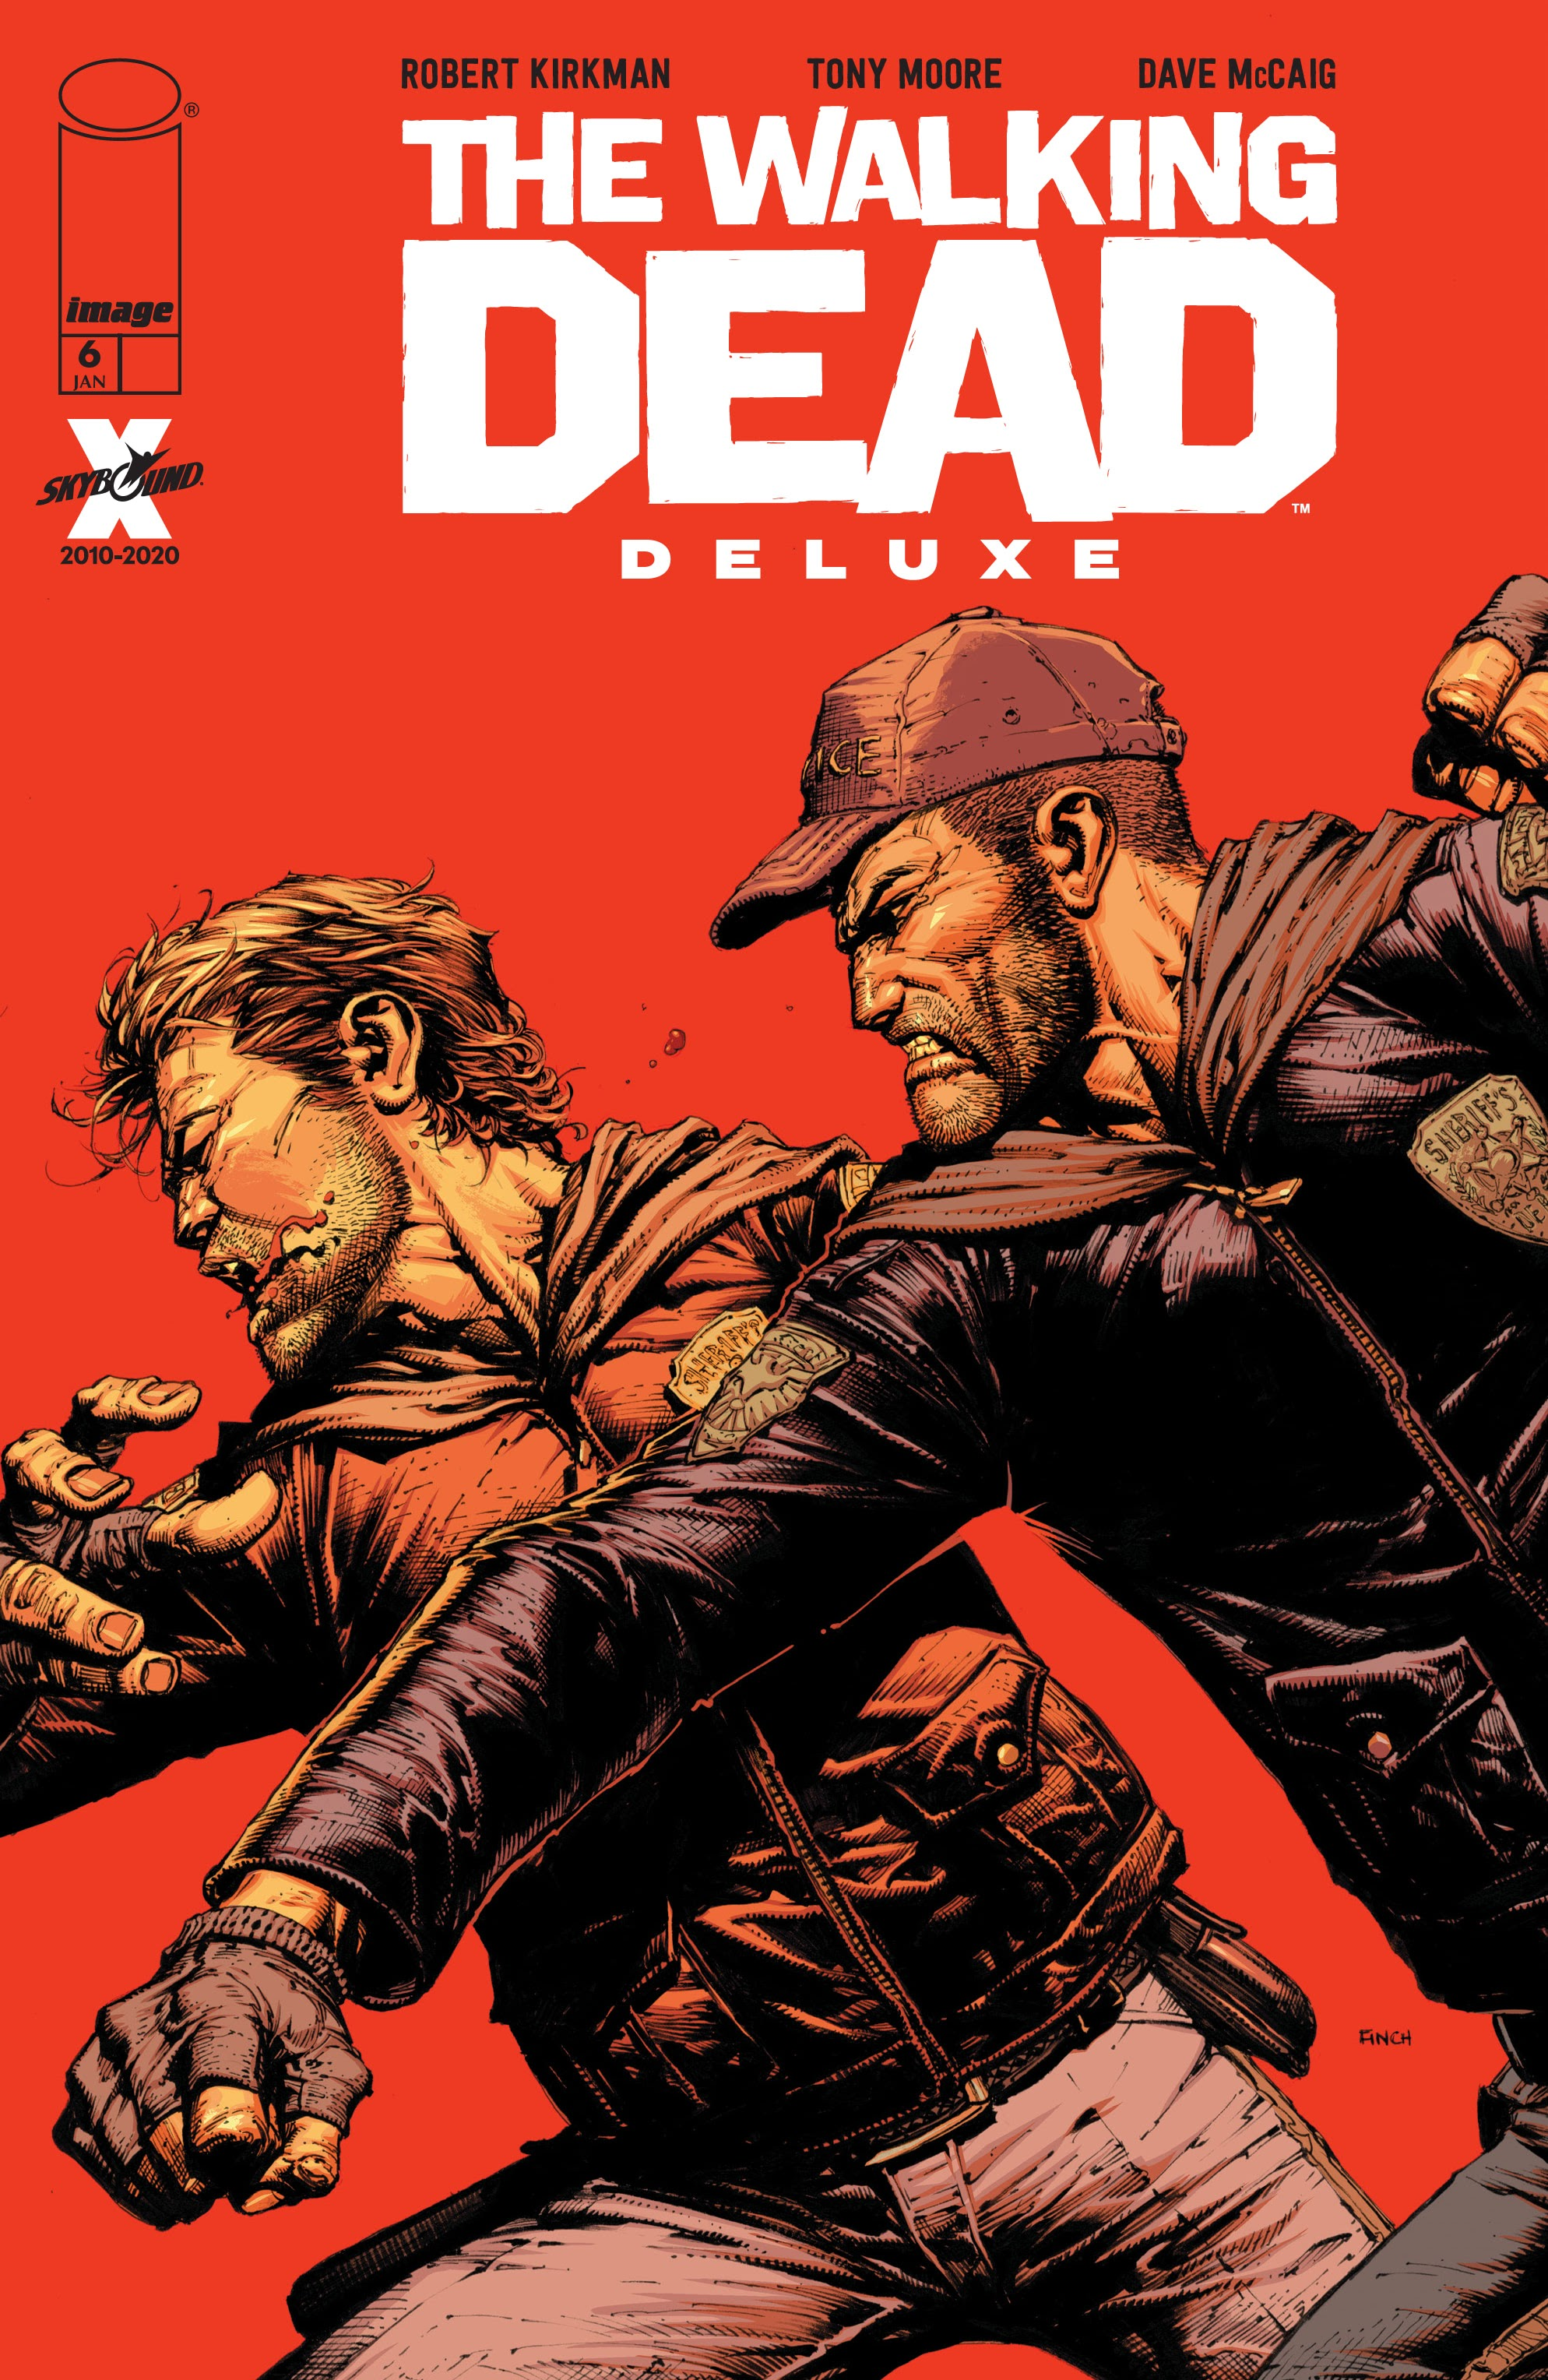 The Walking Dead Deluxe 6 Page 1